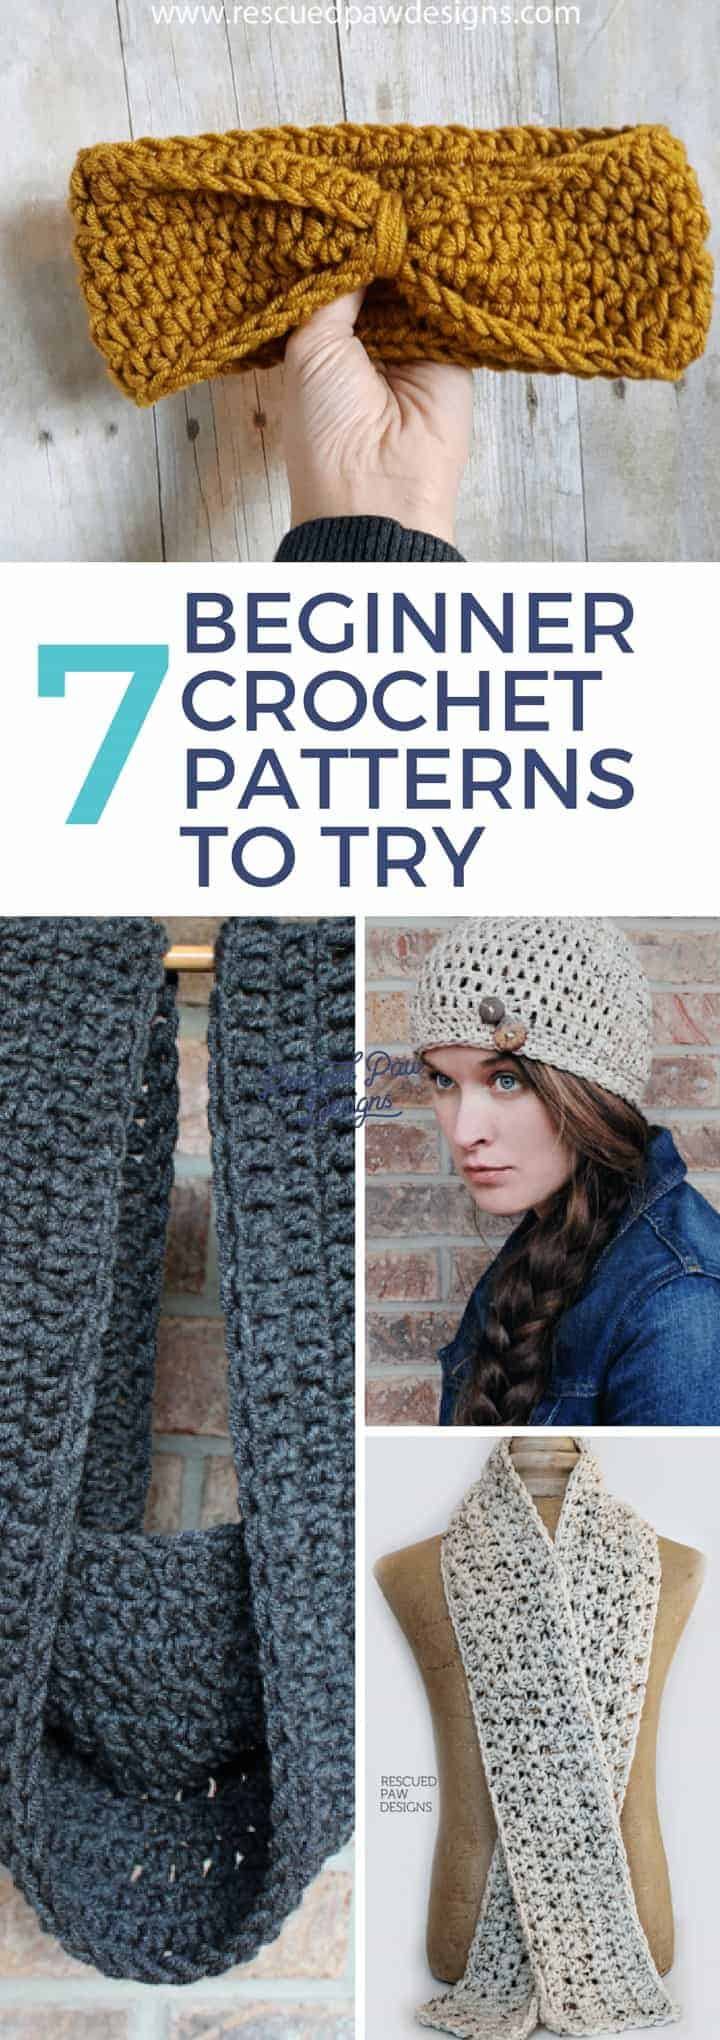 With a never ending supply ofcrochet tutorials for beginners I've handpicked some of my favorites that contain some of the best crochet stitches for beginner crocheters! I know when I was first starting it was hard to find easy patterns to get me started. I always felt intimidated and worried that I couldn't finish a pattern. With this list of easy beginner crochet patterns you will not have to worry about that. I handpicked these to be easy to read and to work up. To start your new project just read on down to find the full list of free crochet patterns for beginners!